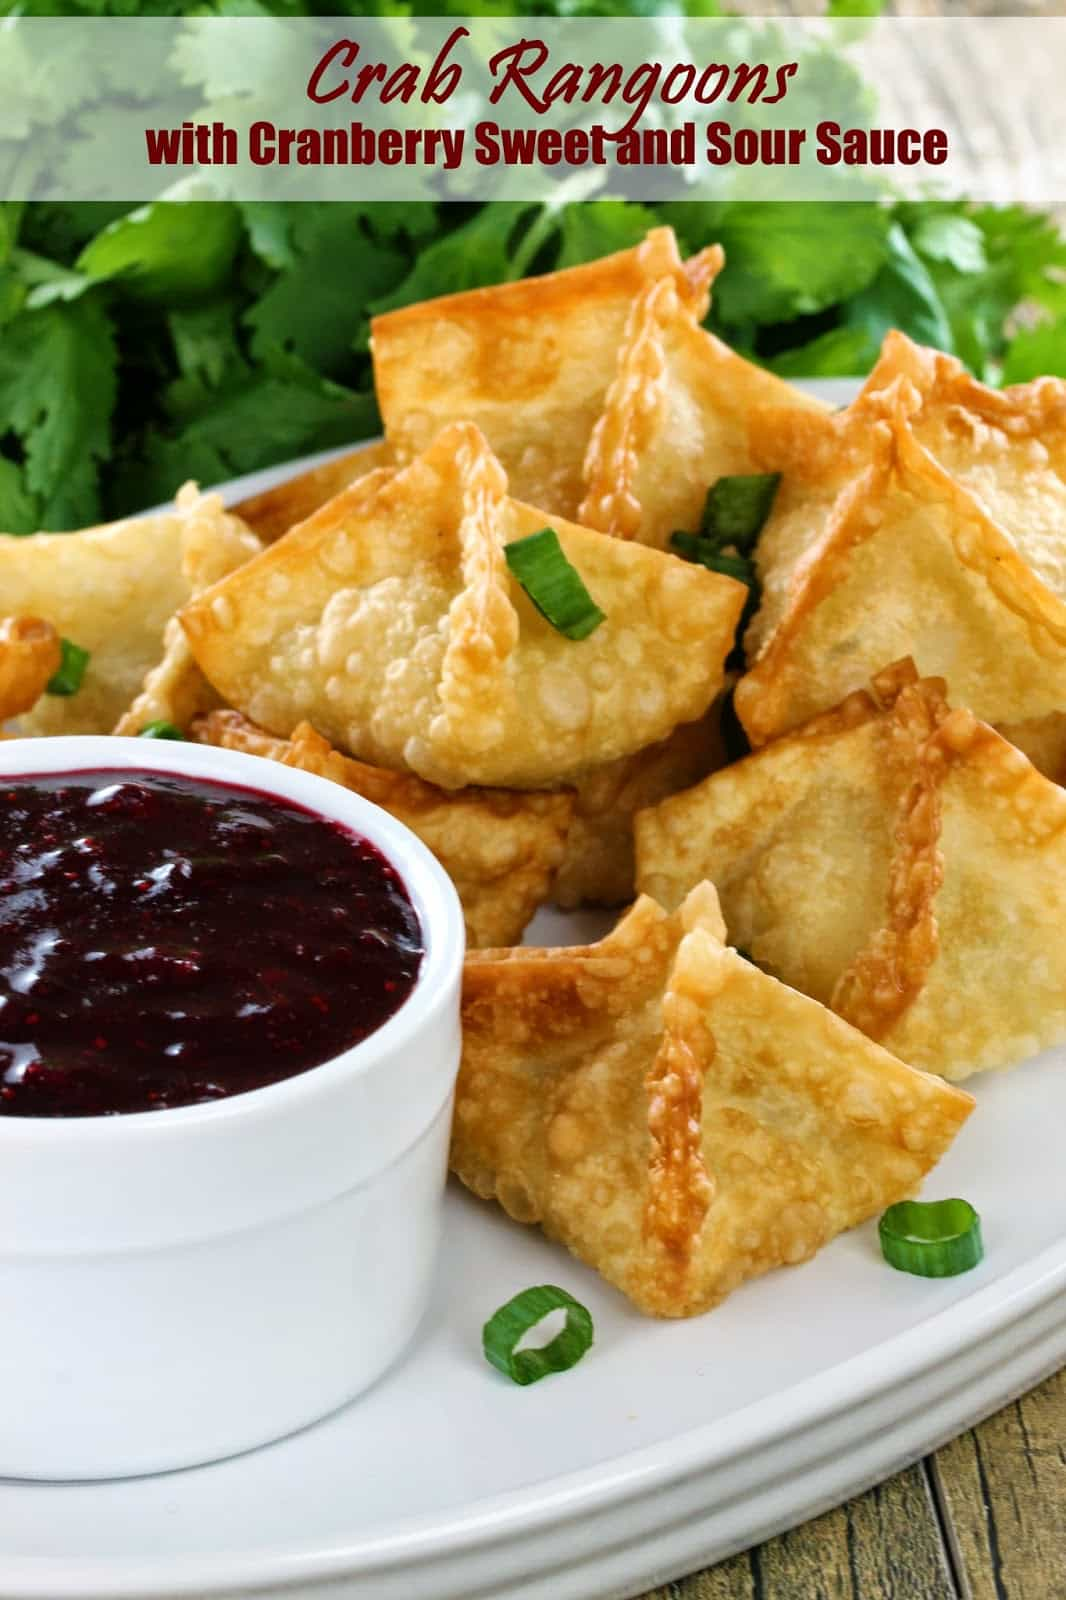 Crab Rangoons with Cranberry Sweet and Sour Dipping Sauce: Rangoons are pockets of crab, cream cheese and delicious Asian flavors folded in wonton wrappers and fried to a crispy perfection. These are served up with a homemade cranberry sweet and sour sauce